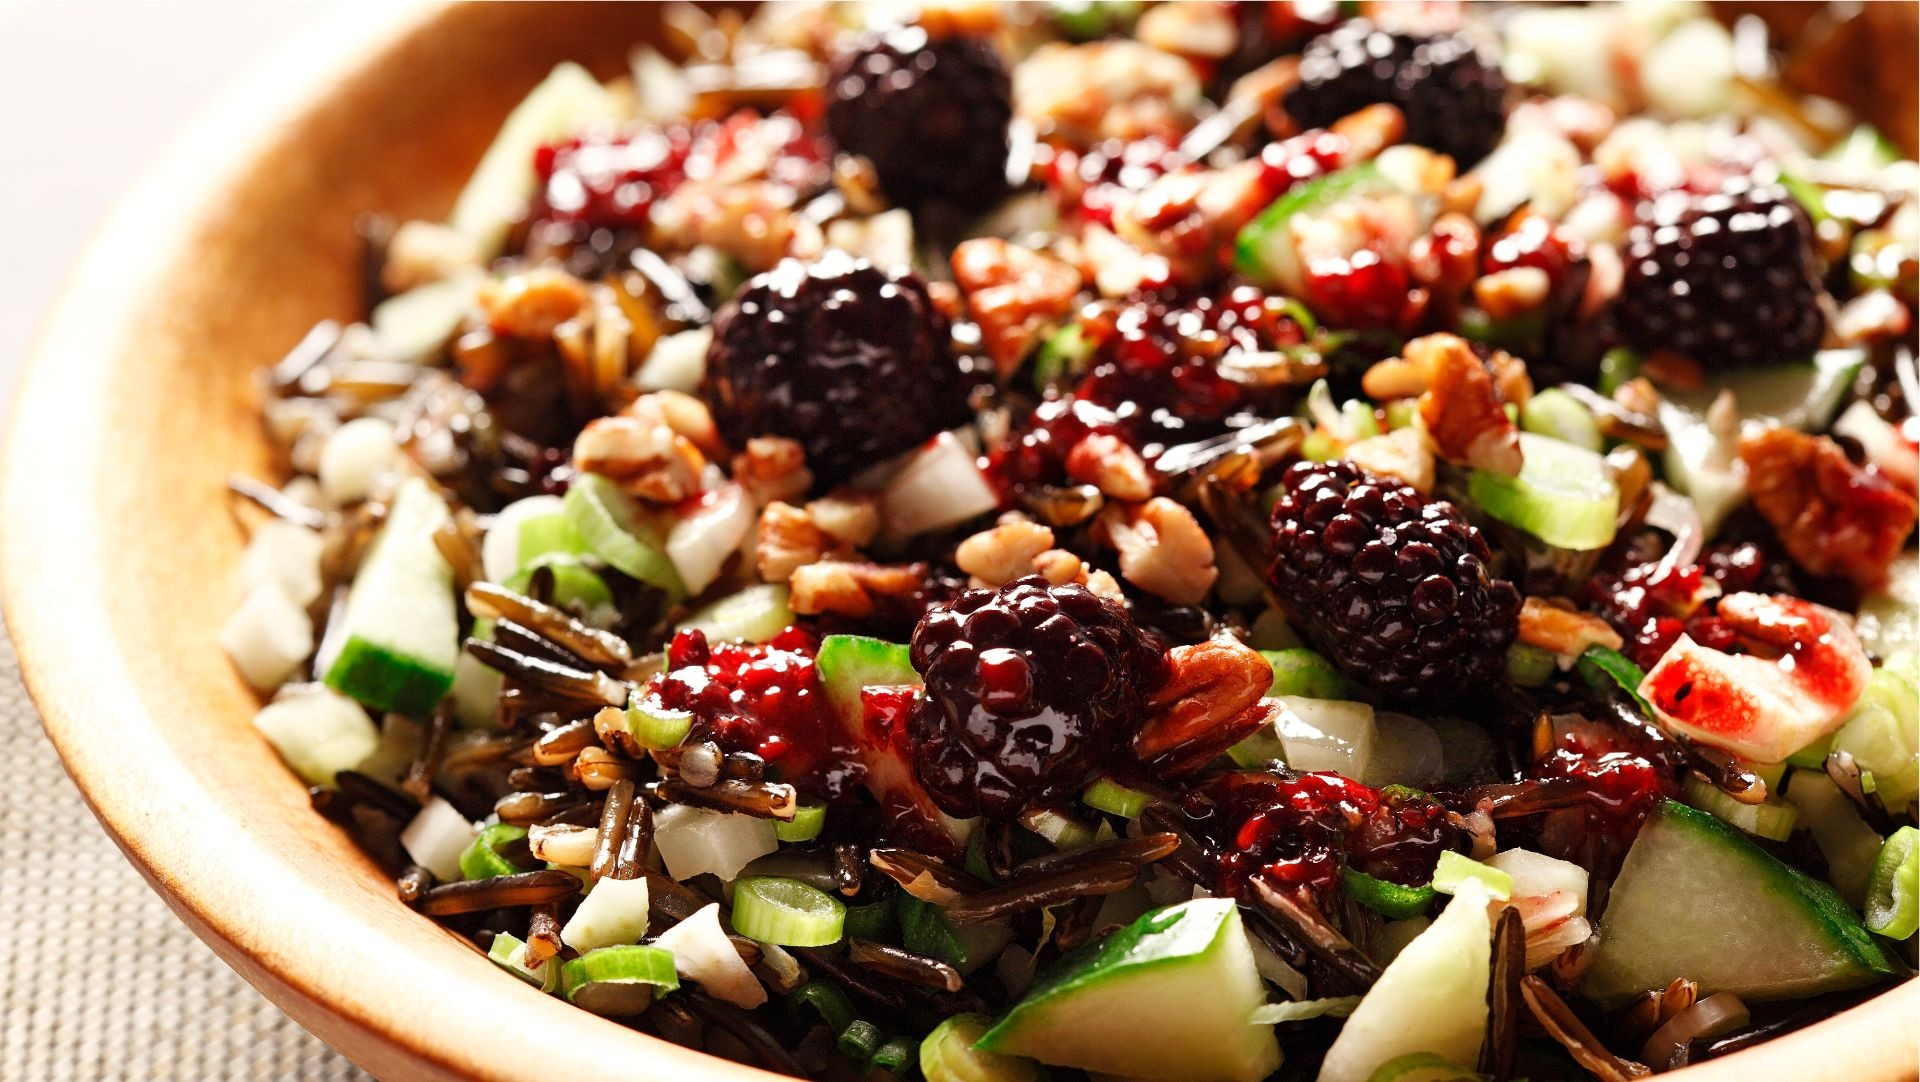 Crunchy wild rice salad with blackberry dressing in a wooden bowl.